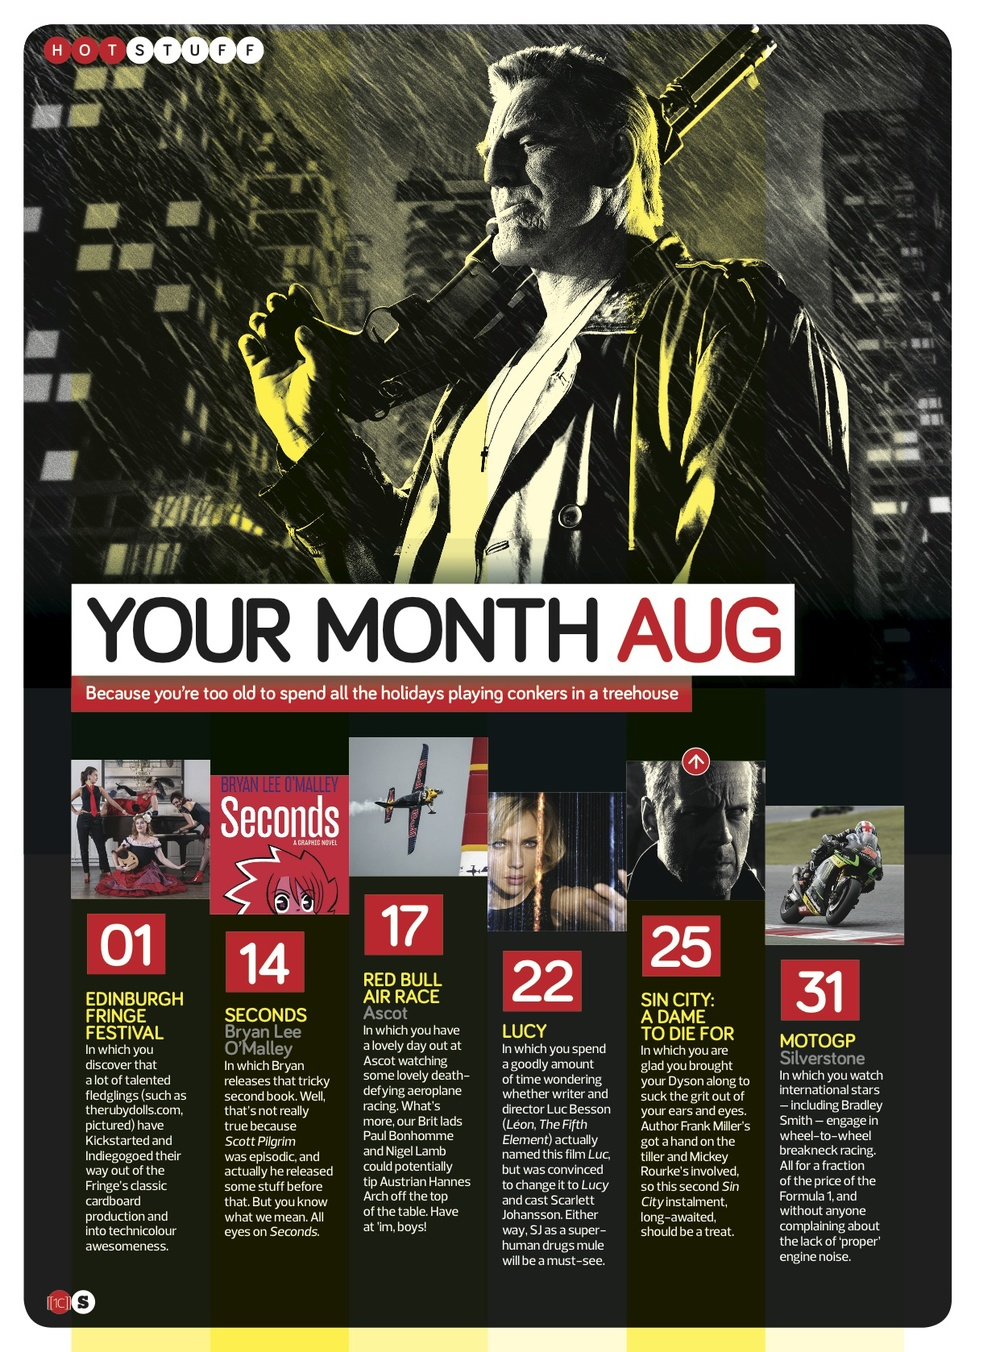 Featured No. 1 in Stuff Magazine's Top Things to see in the UK in August 2014